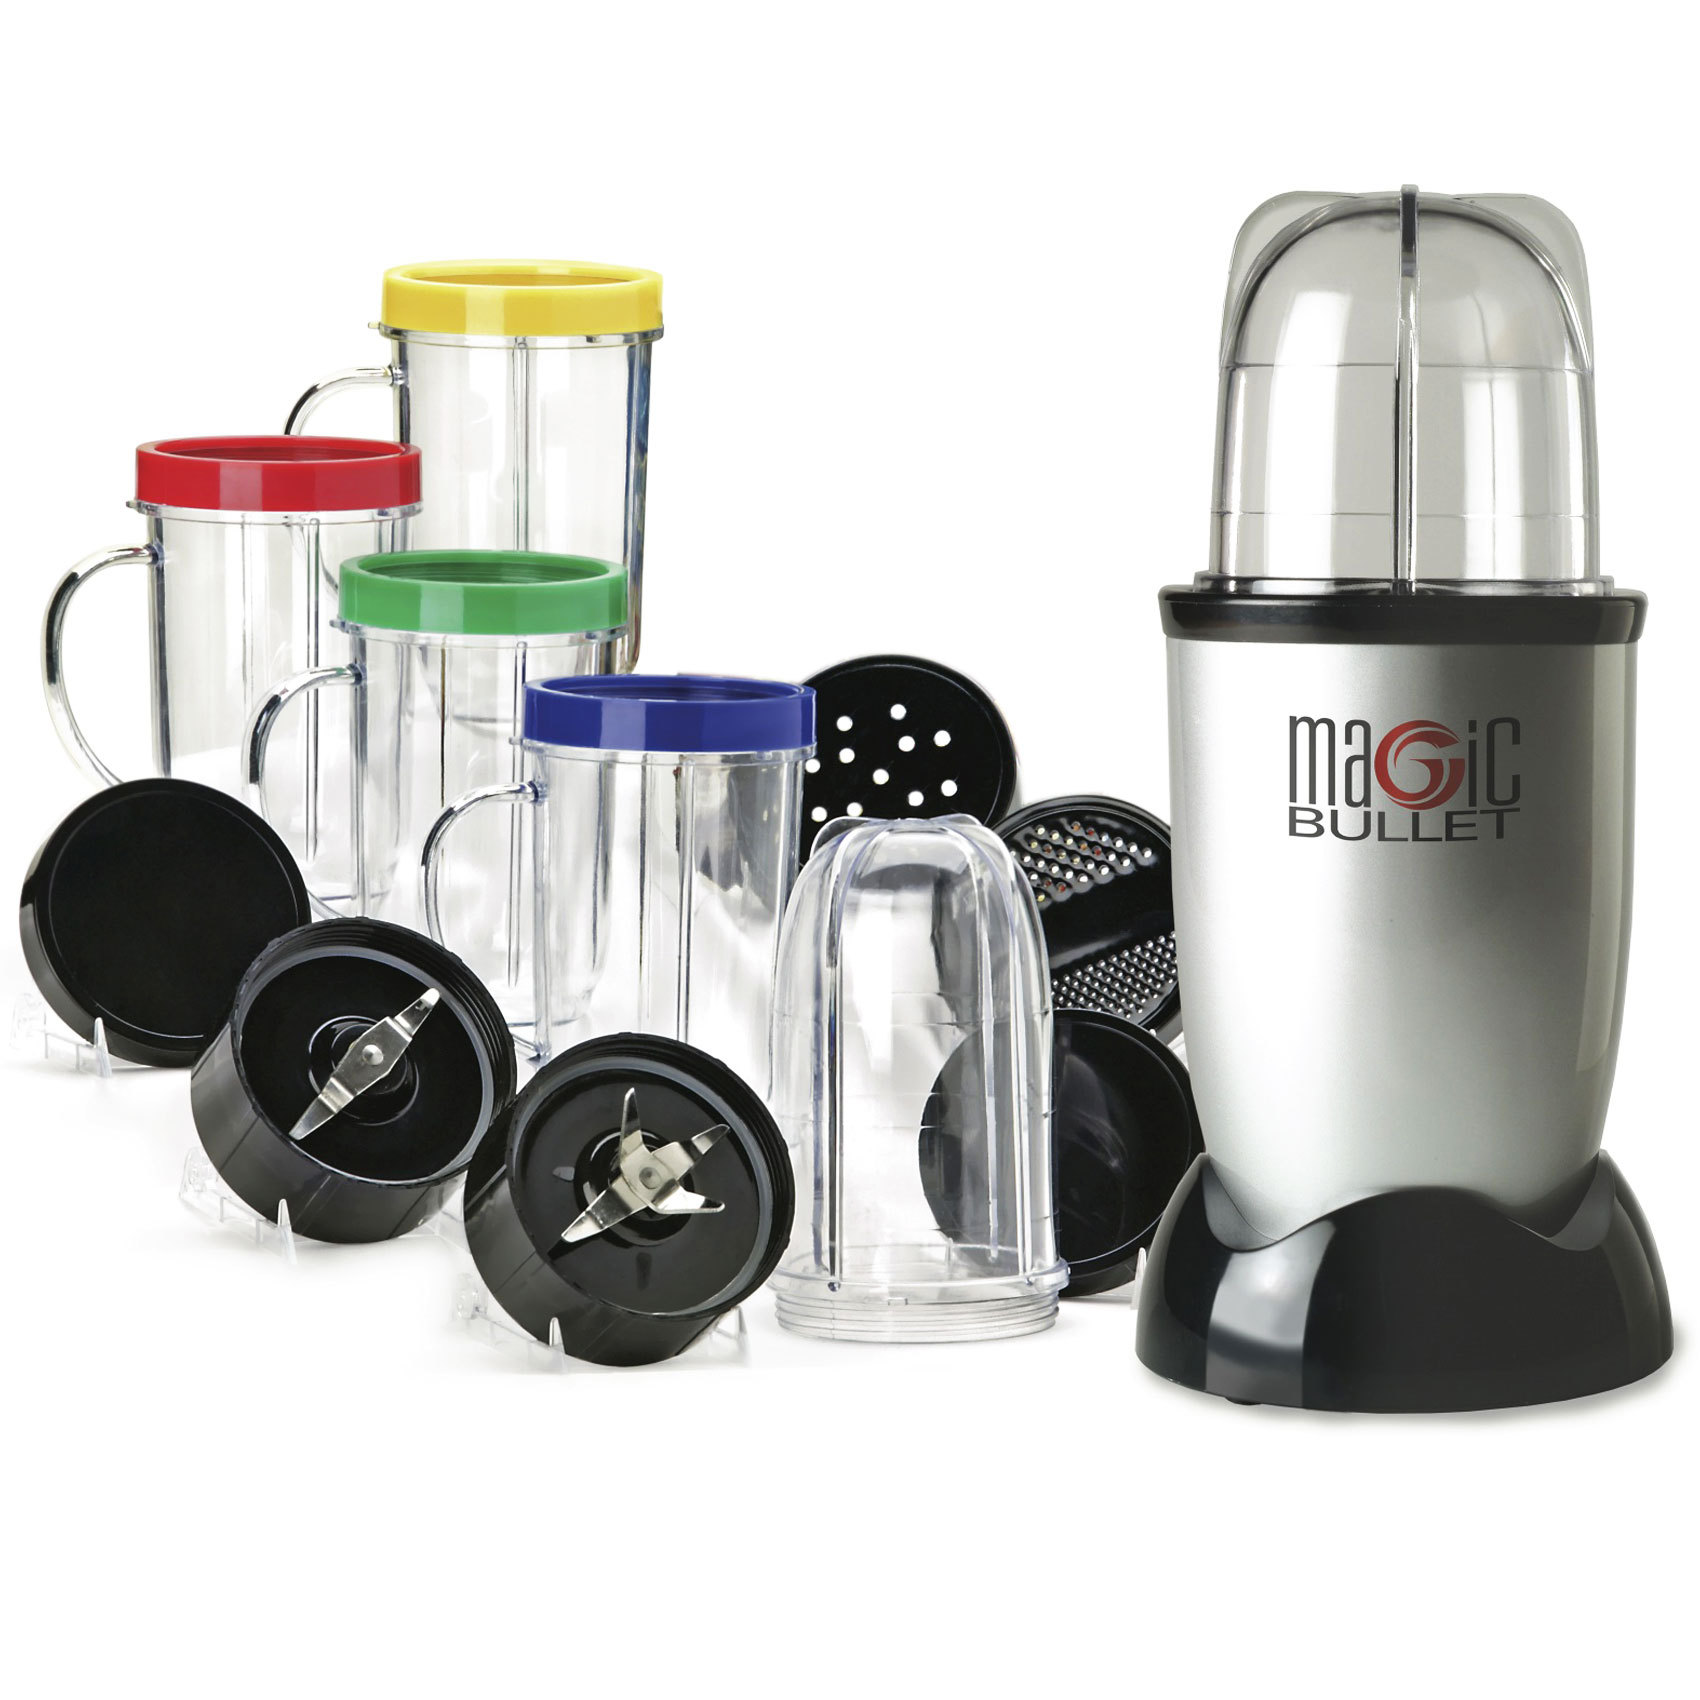 MAGIC BULLET S-MAKER MBR-1712M